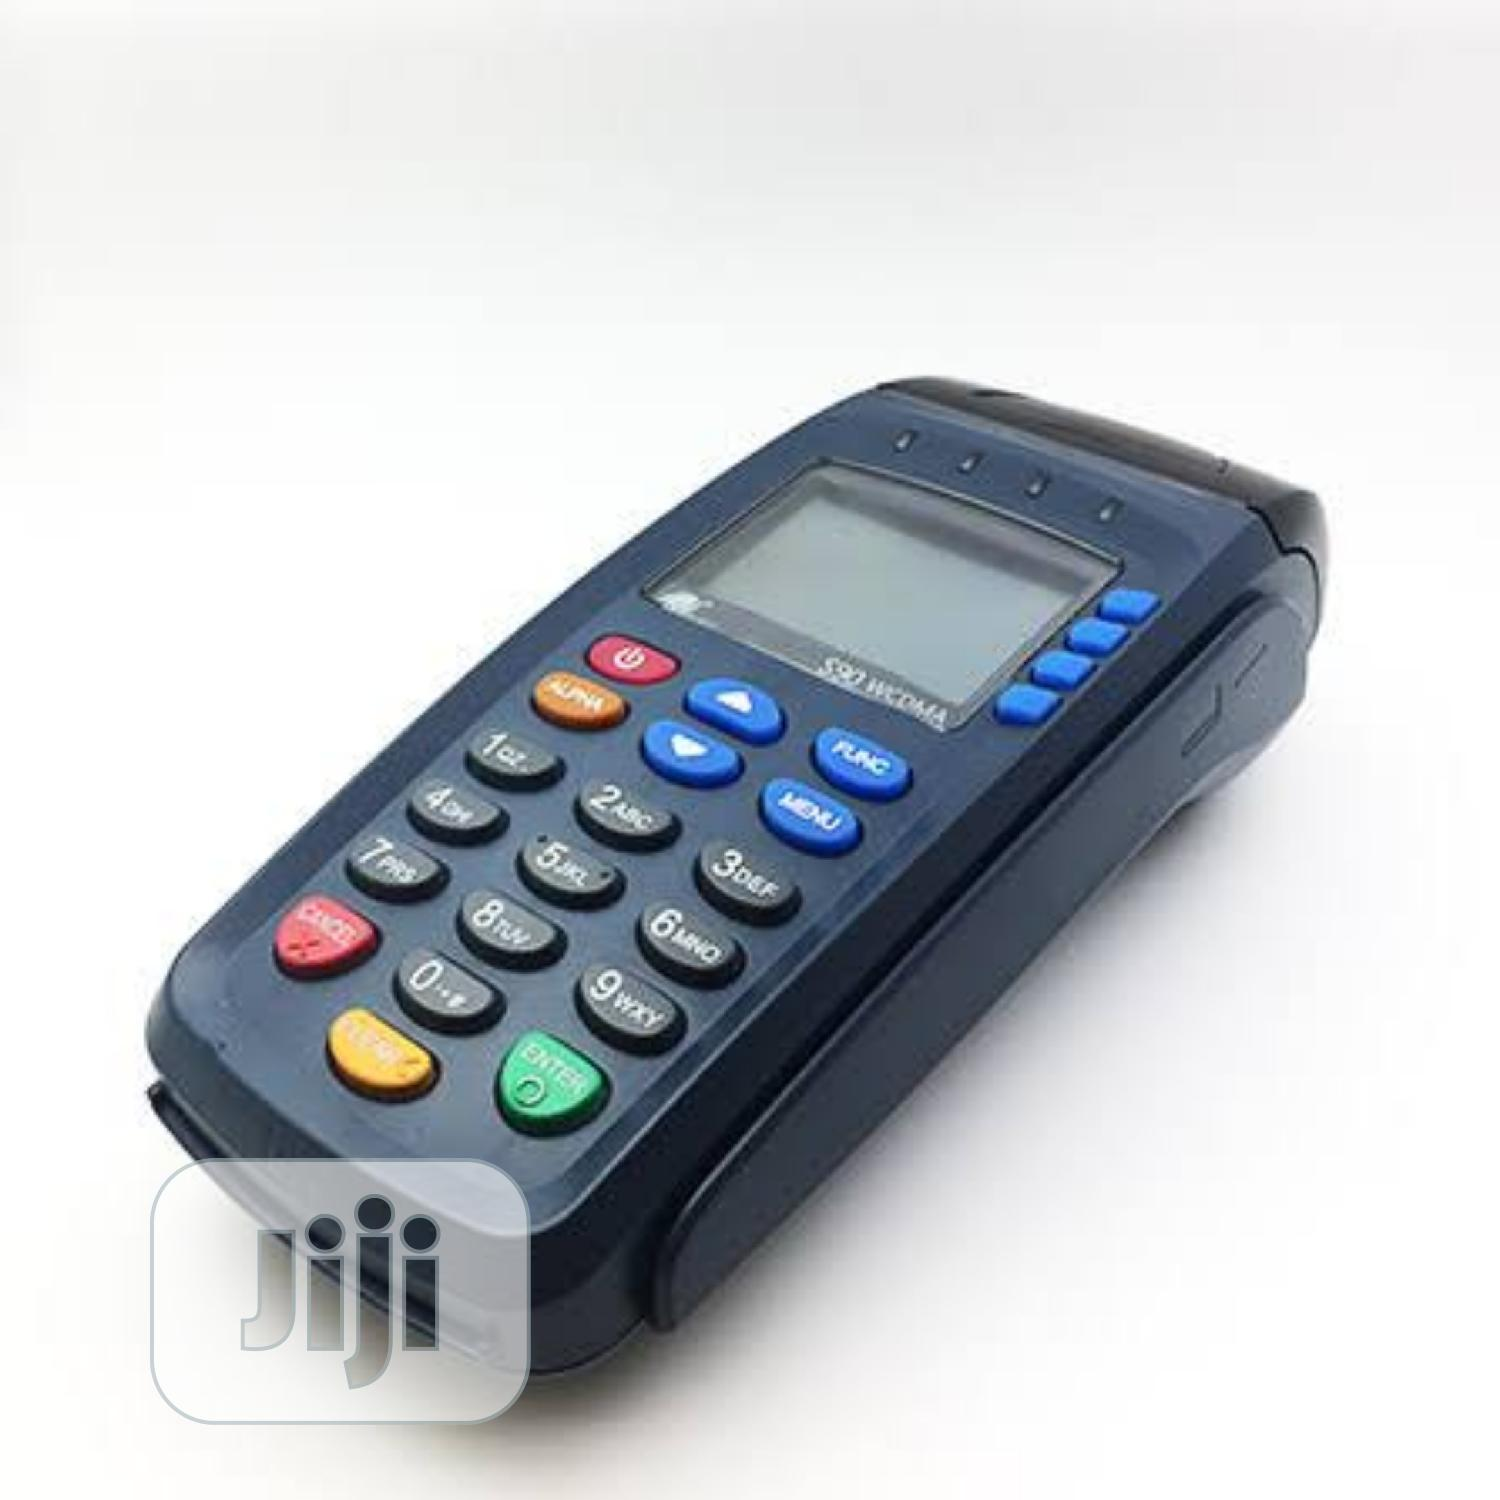 Originql Brand New Imported Pax S90 Pos Terminal | Store Equipment for sale in Oshodi, Lagos State, Nigeria